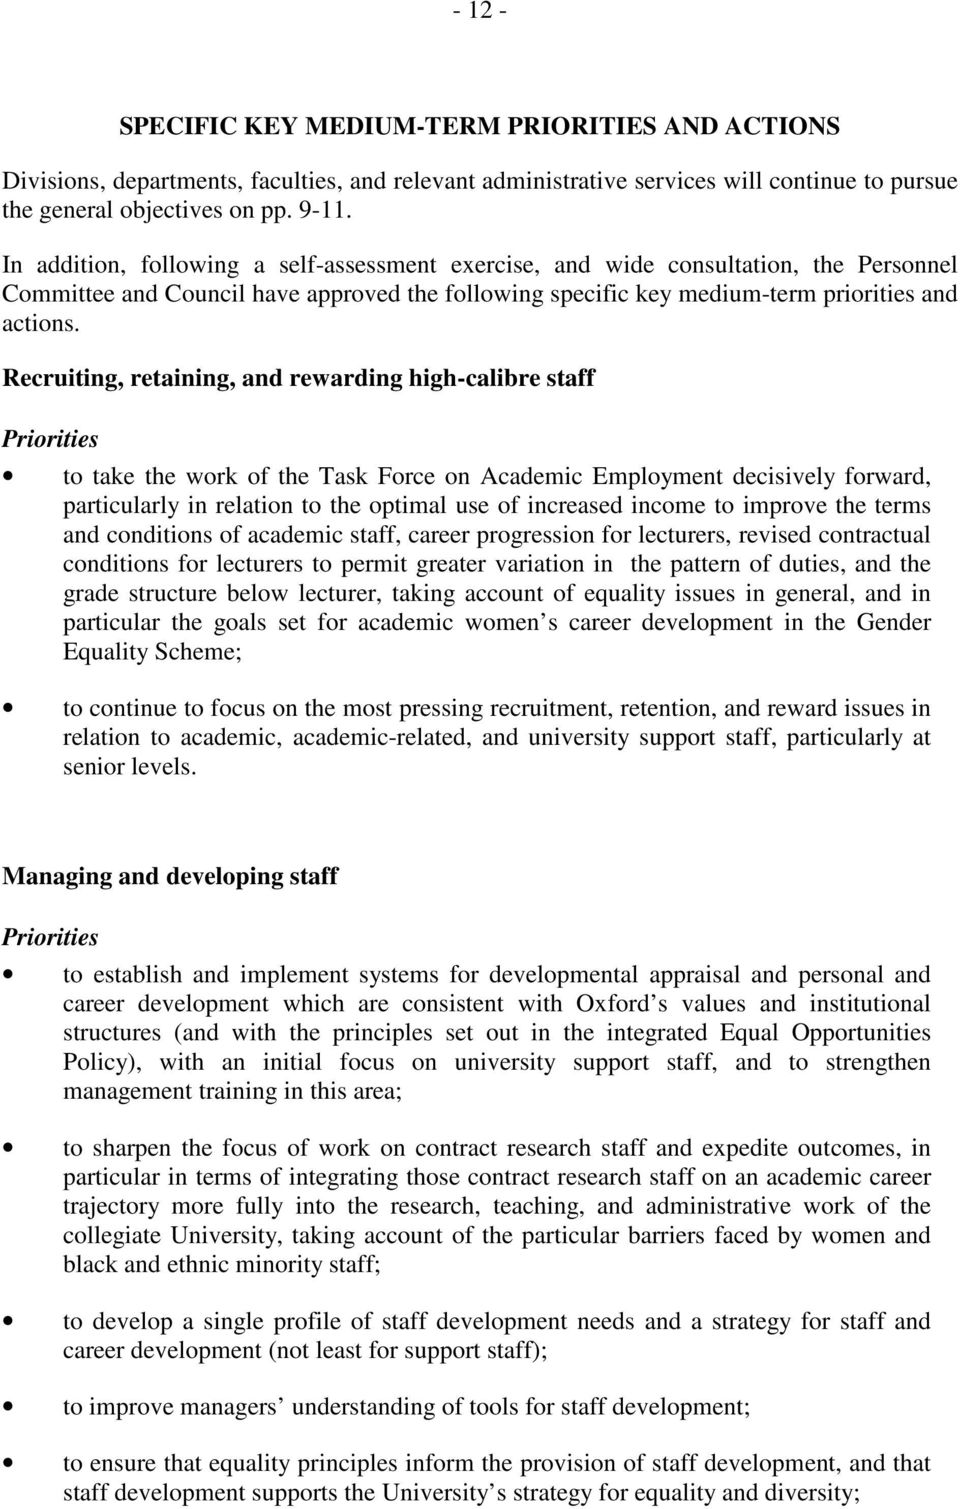 Recruiting, retaining, and rewarding high-calibre staff Priorities to take the work of the Task Force on Academic Employment decisively forward, particularly in relation to the optimal use of